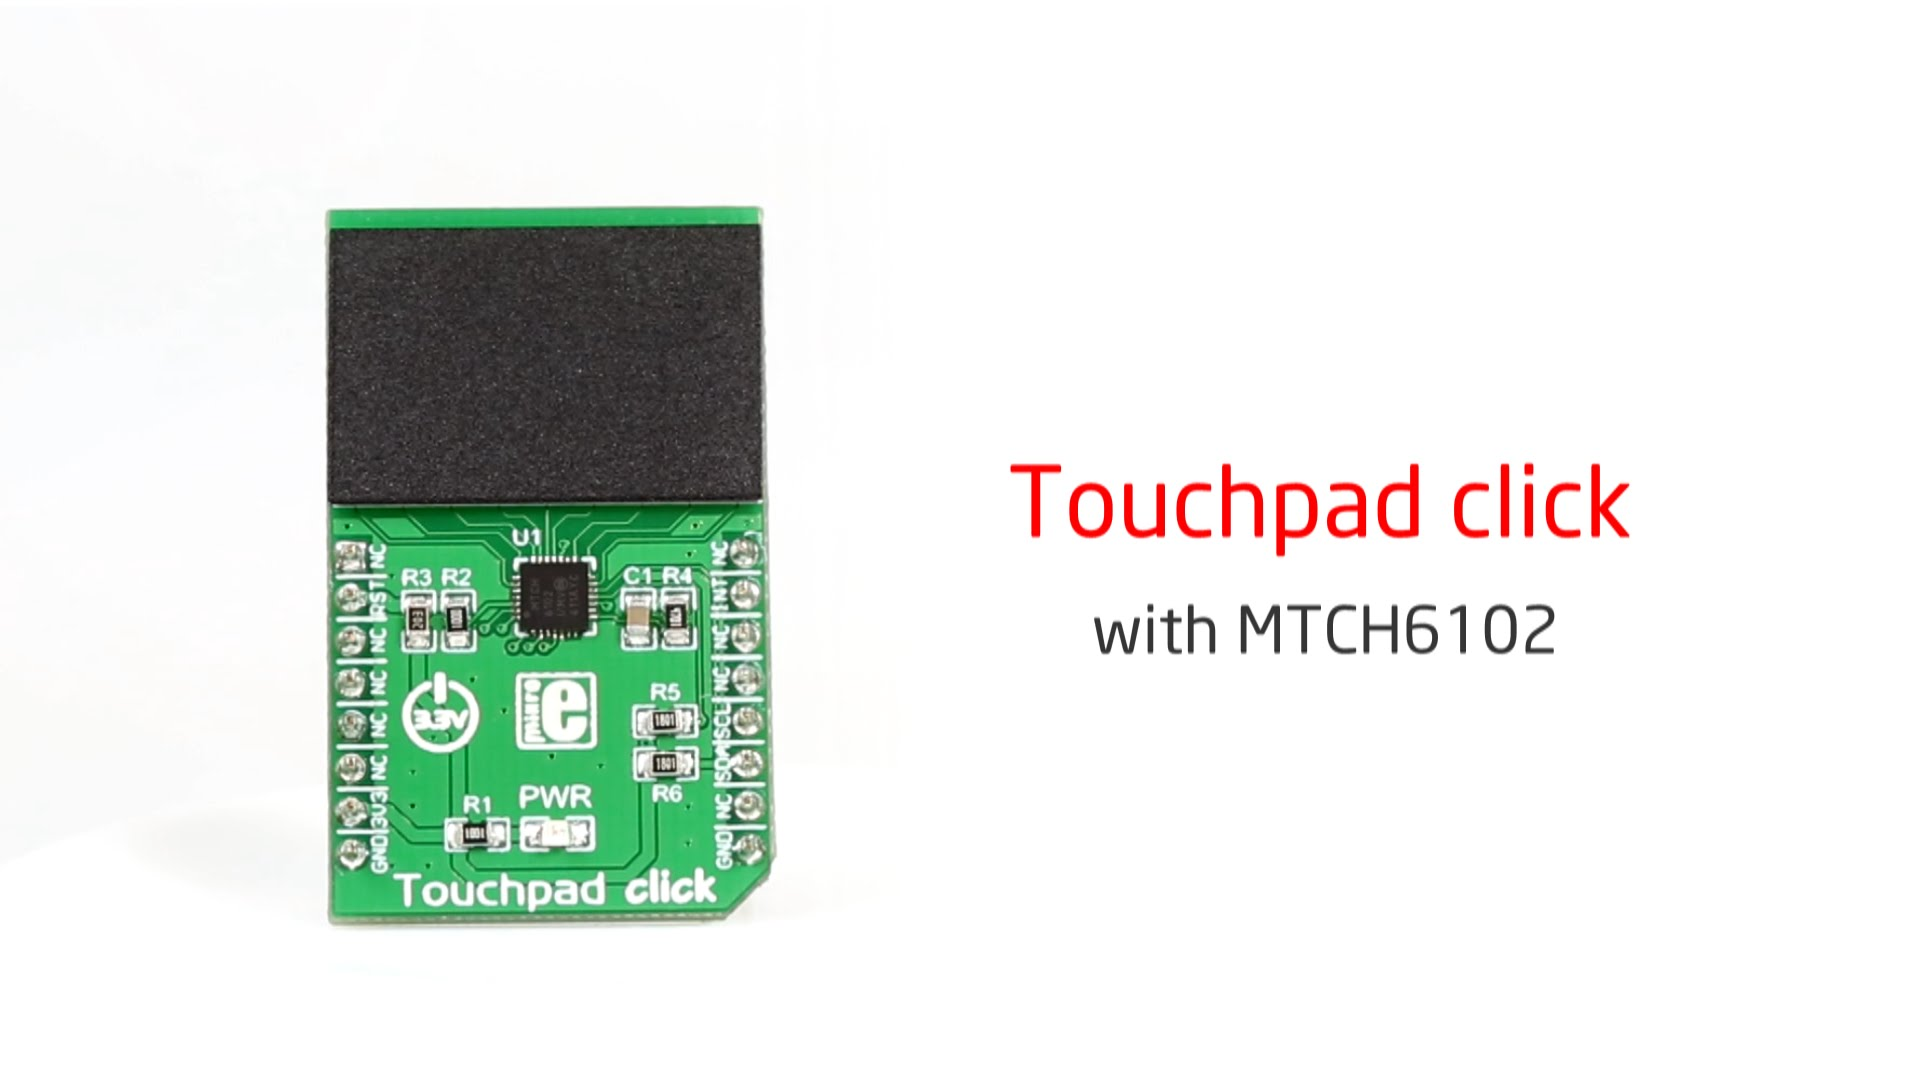 Touchpad click released